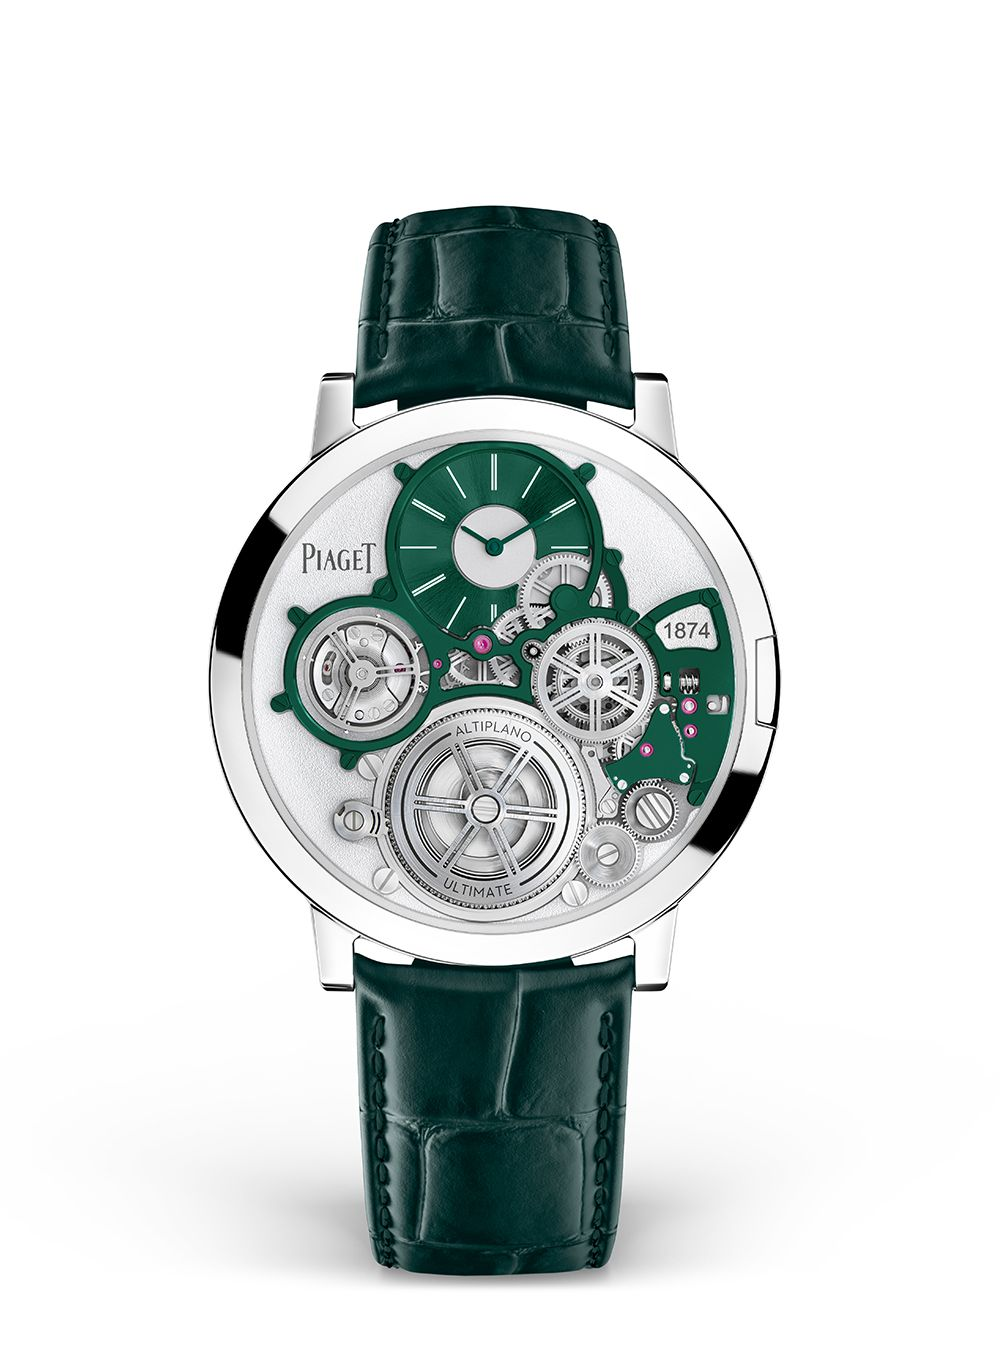 Altiplano Ultimate Concept仙子坡特別版腕錶by Piaget。